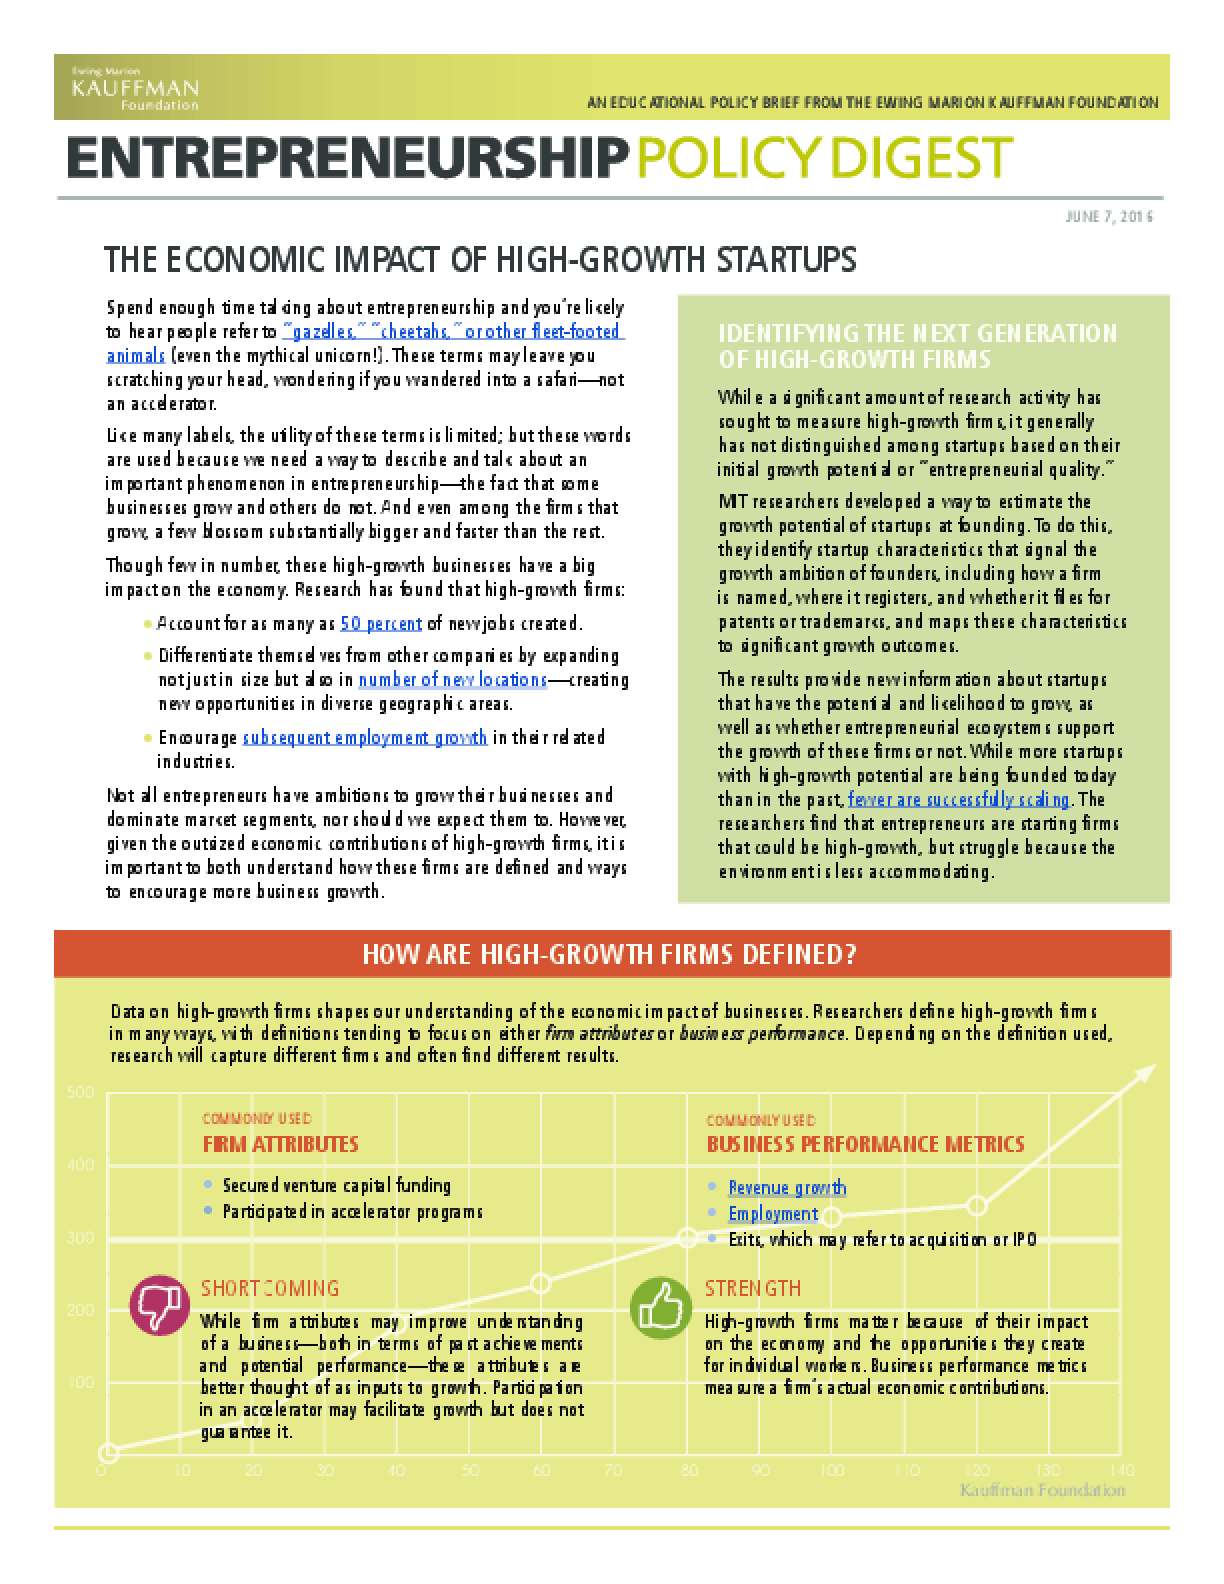 The Economic Impact of High-Growth Startups